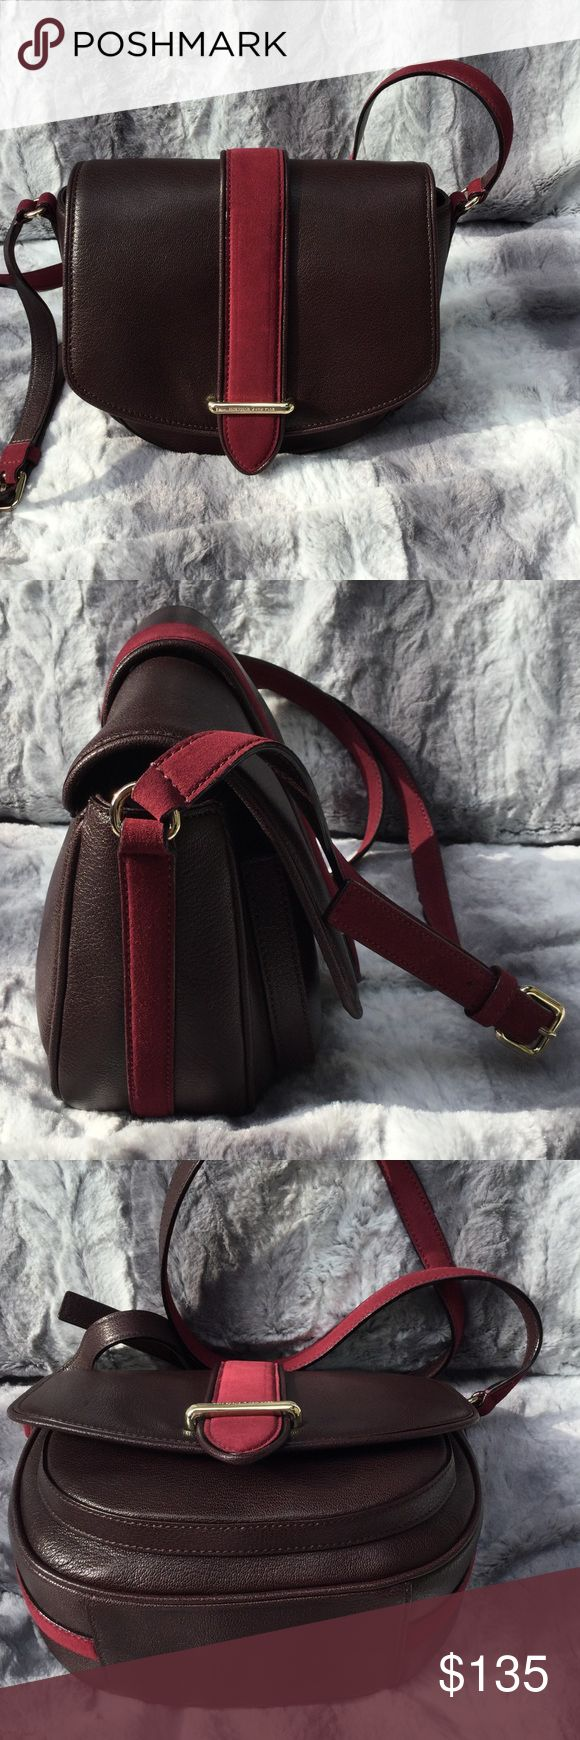 "Kate Spade Large Crosbody Belted Bar Marsi ( Saddle Bag). Leather/ Suede, beautiful Mulled Wine Color, Perfect for Fall.  10"" x 8"" x 4.1"".  Interior zip pocket, very roomy for a Crosbody. New and Unused form a KS Sample sale. kate spade Bags Crossbody Bags"